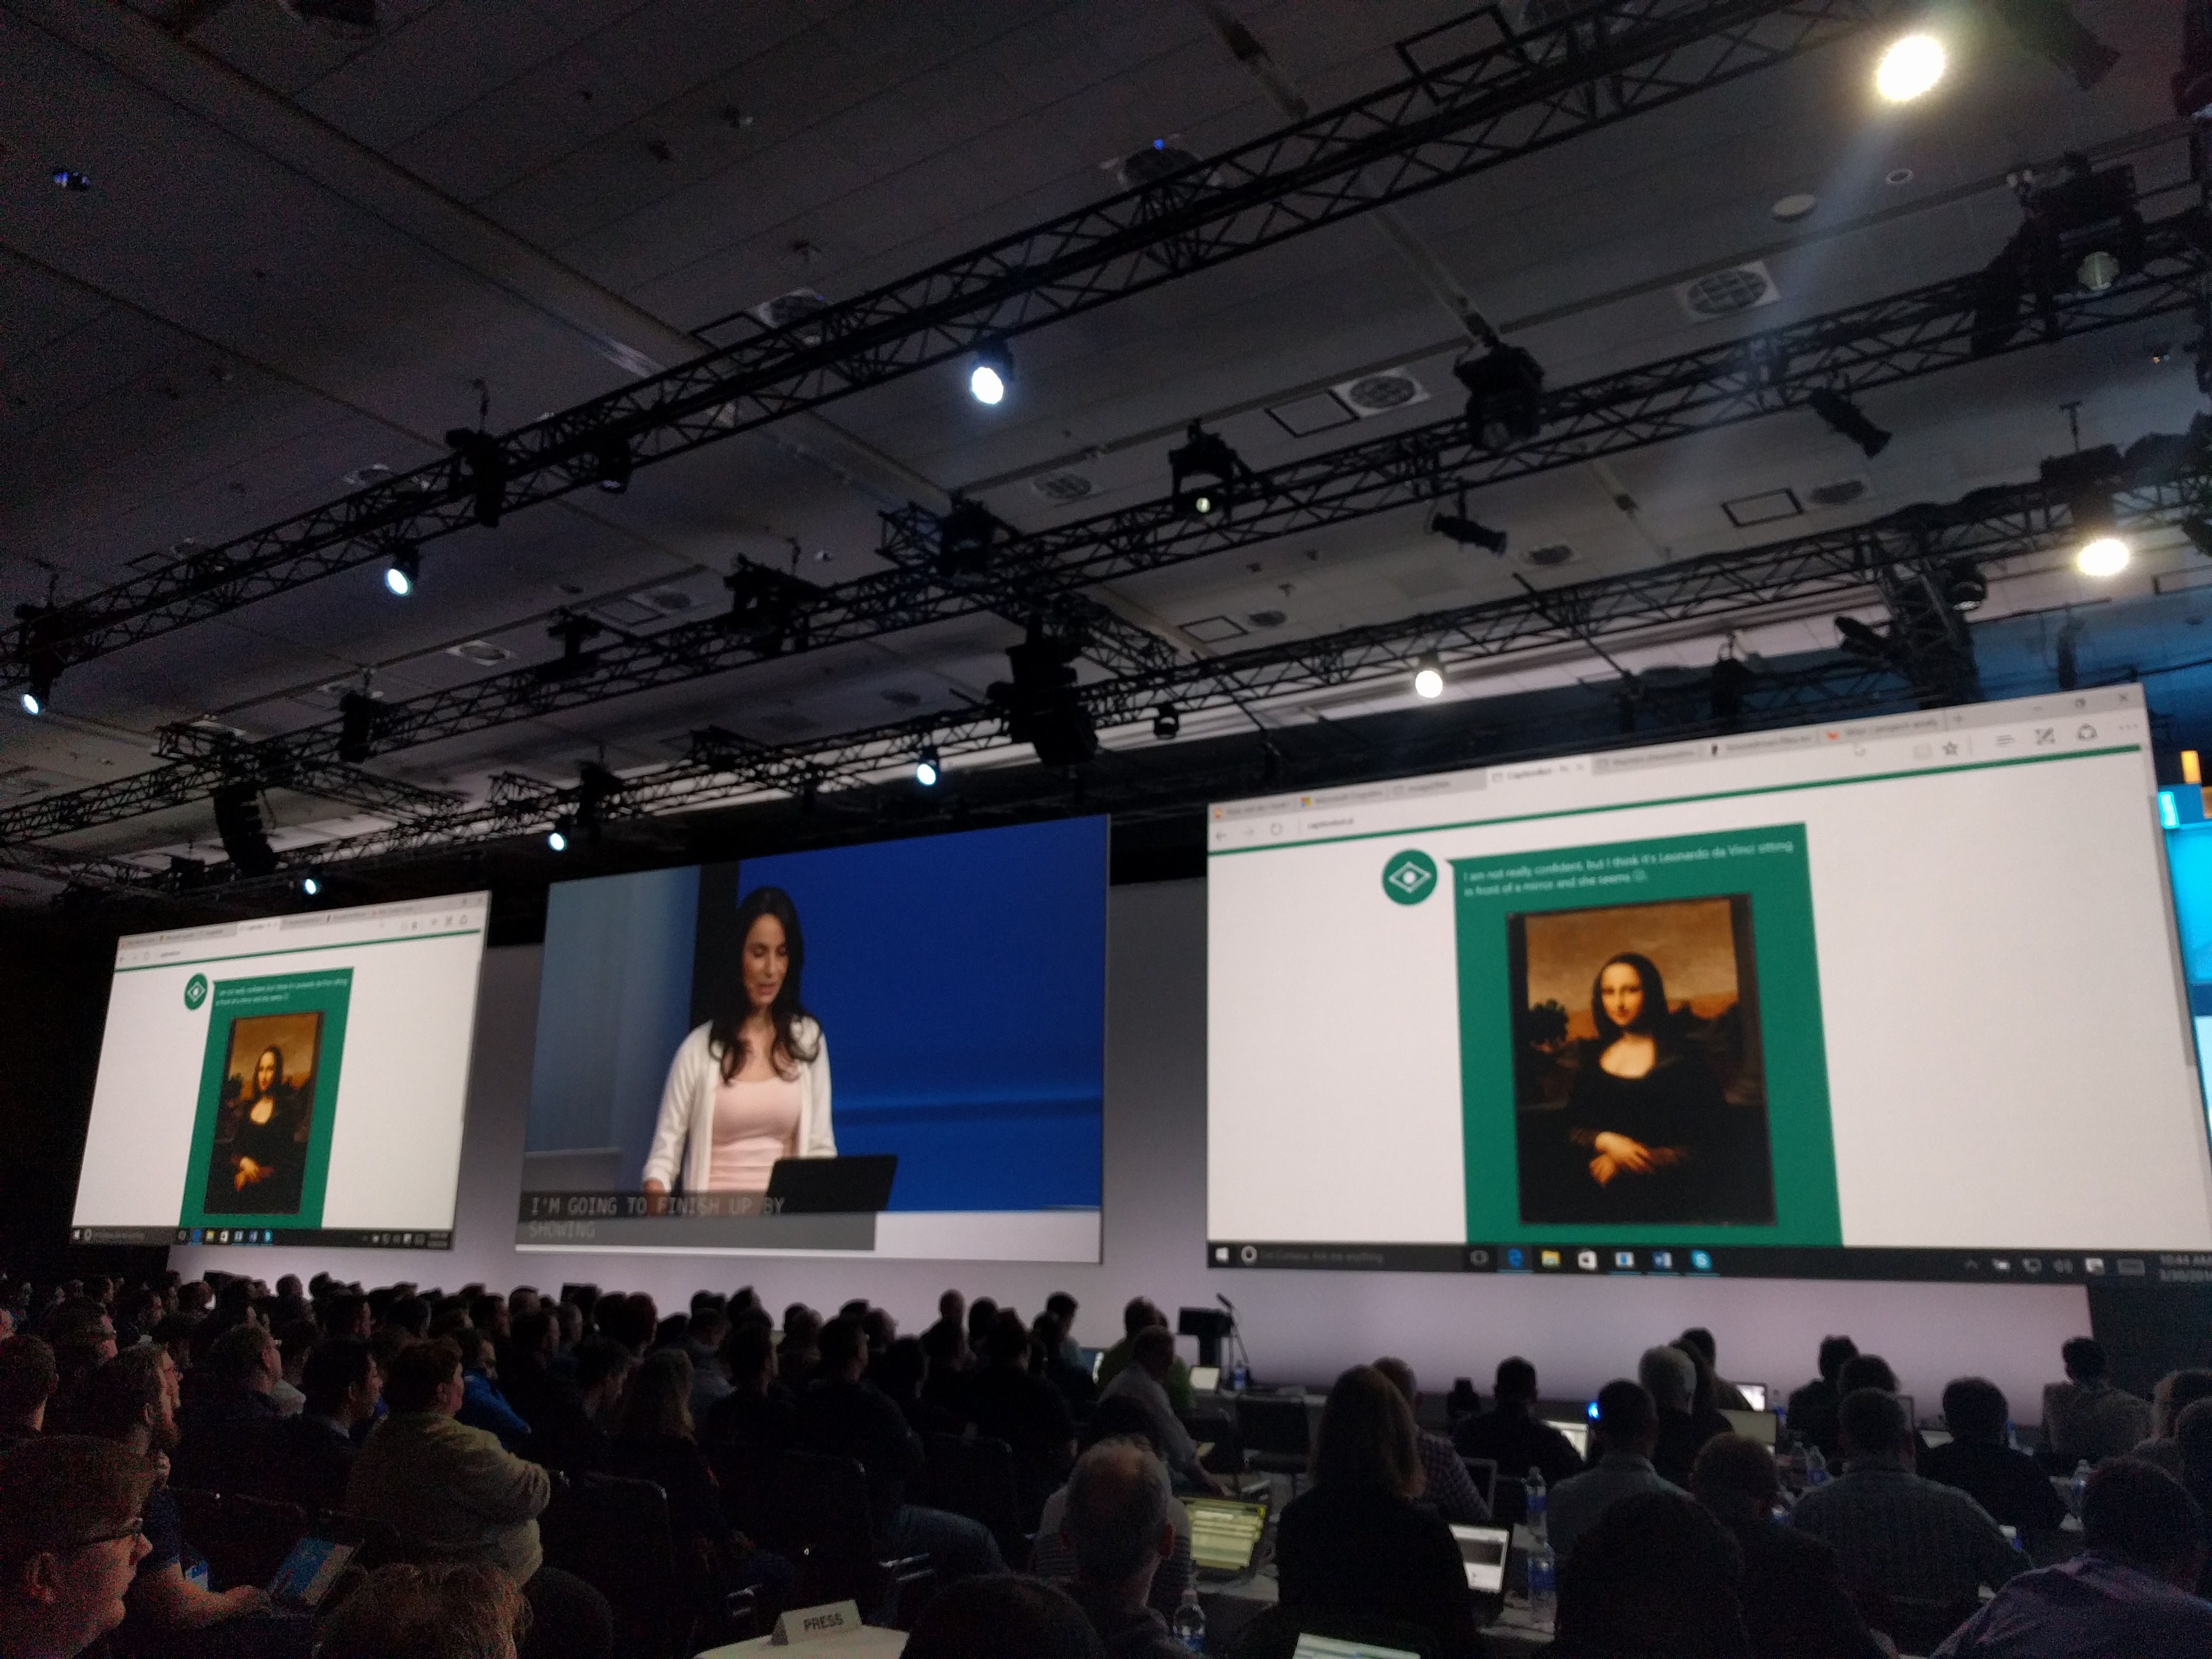 Microsoft senior program manager lead Cornelia Carapcea demonstrates one of the Cognitive Services at the Build conference in San Francisco on March 30.